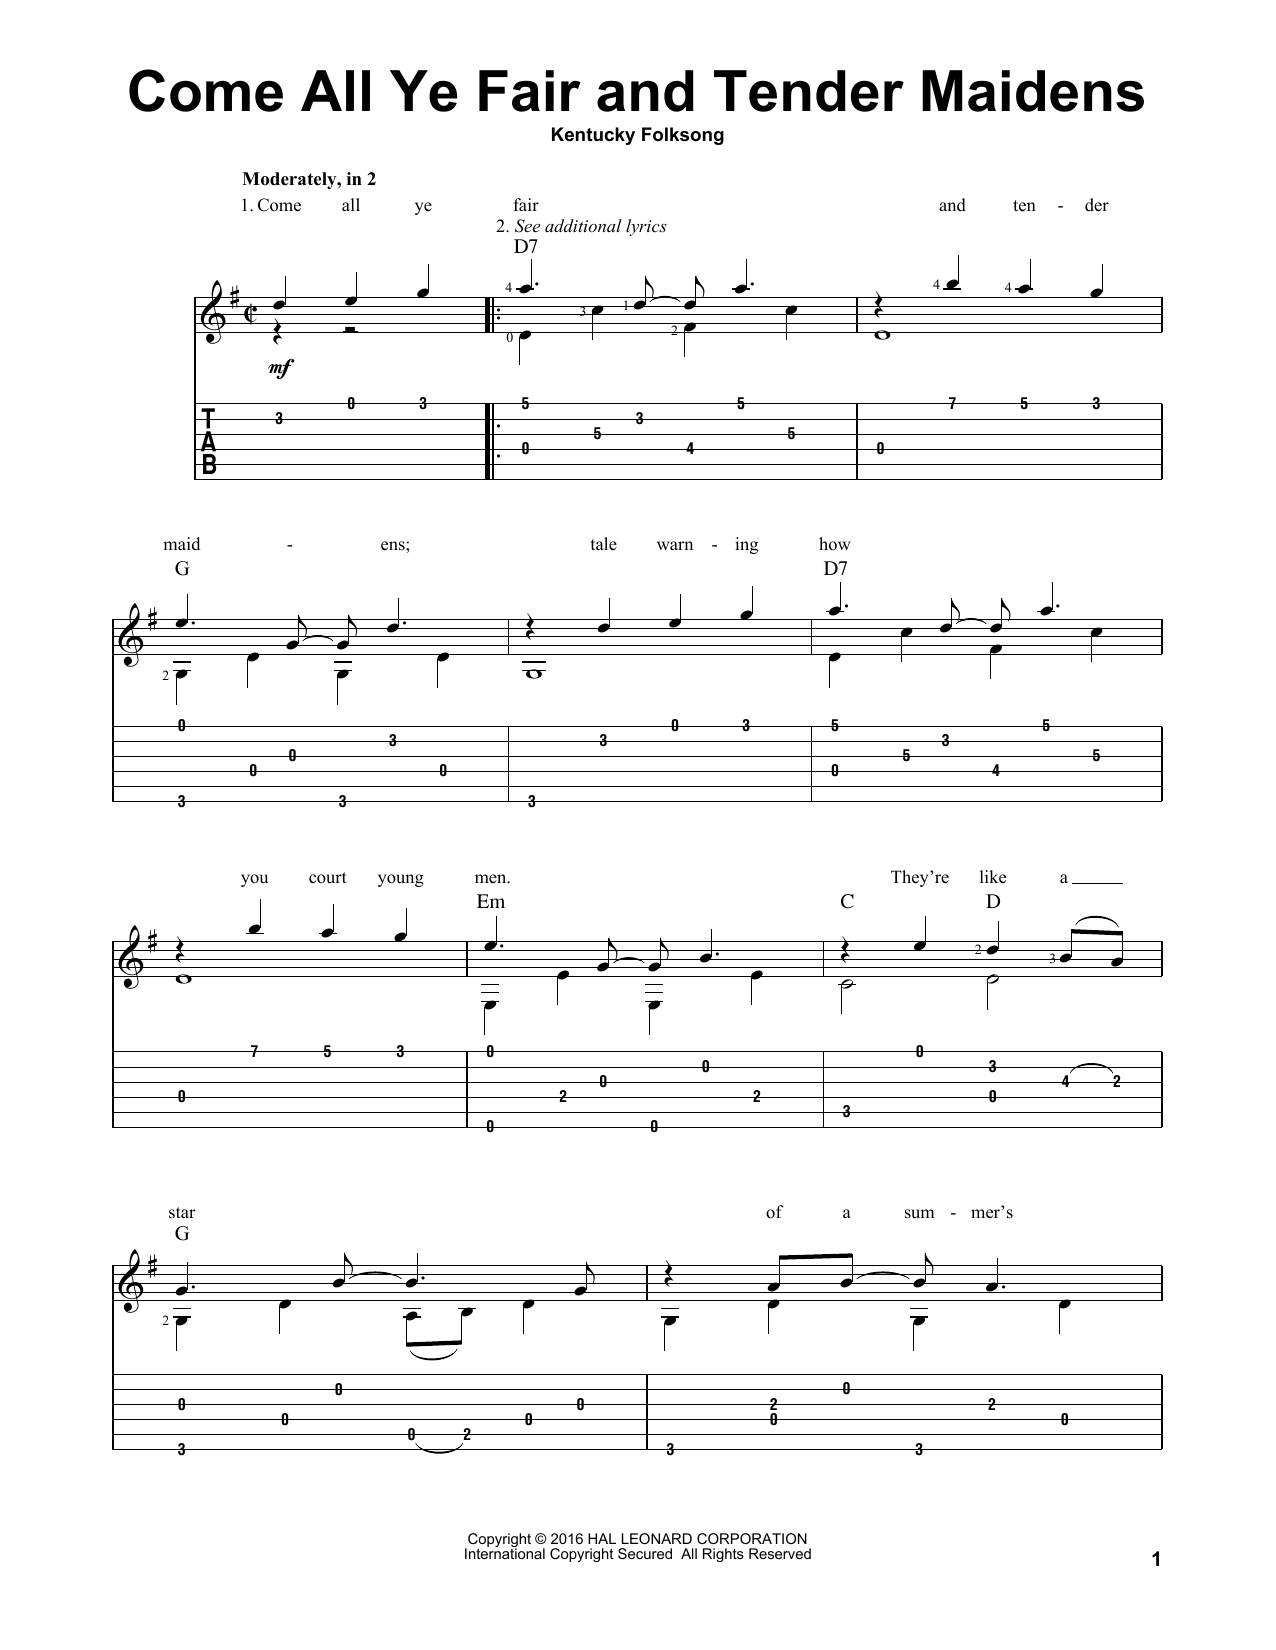 Come All Ye Fair And Tender Maidens Sheet Music